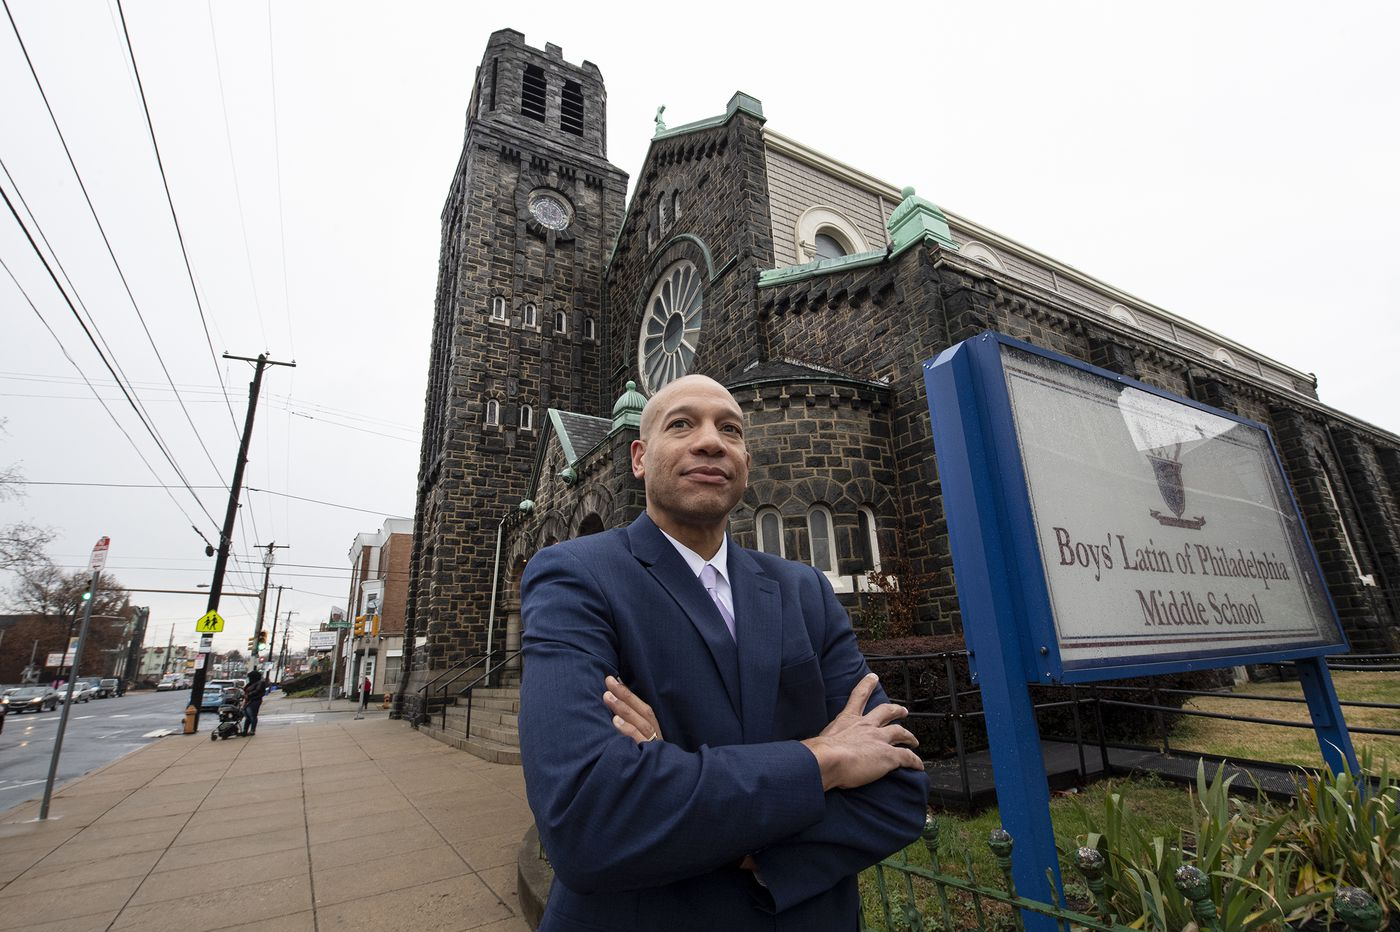 A Philly charter school bought this church building, and now it faces a preservation battle